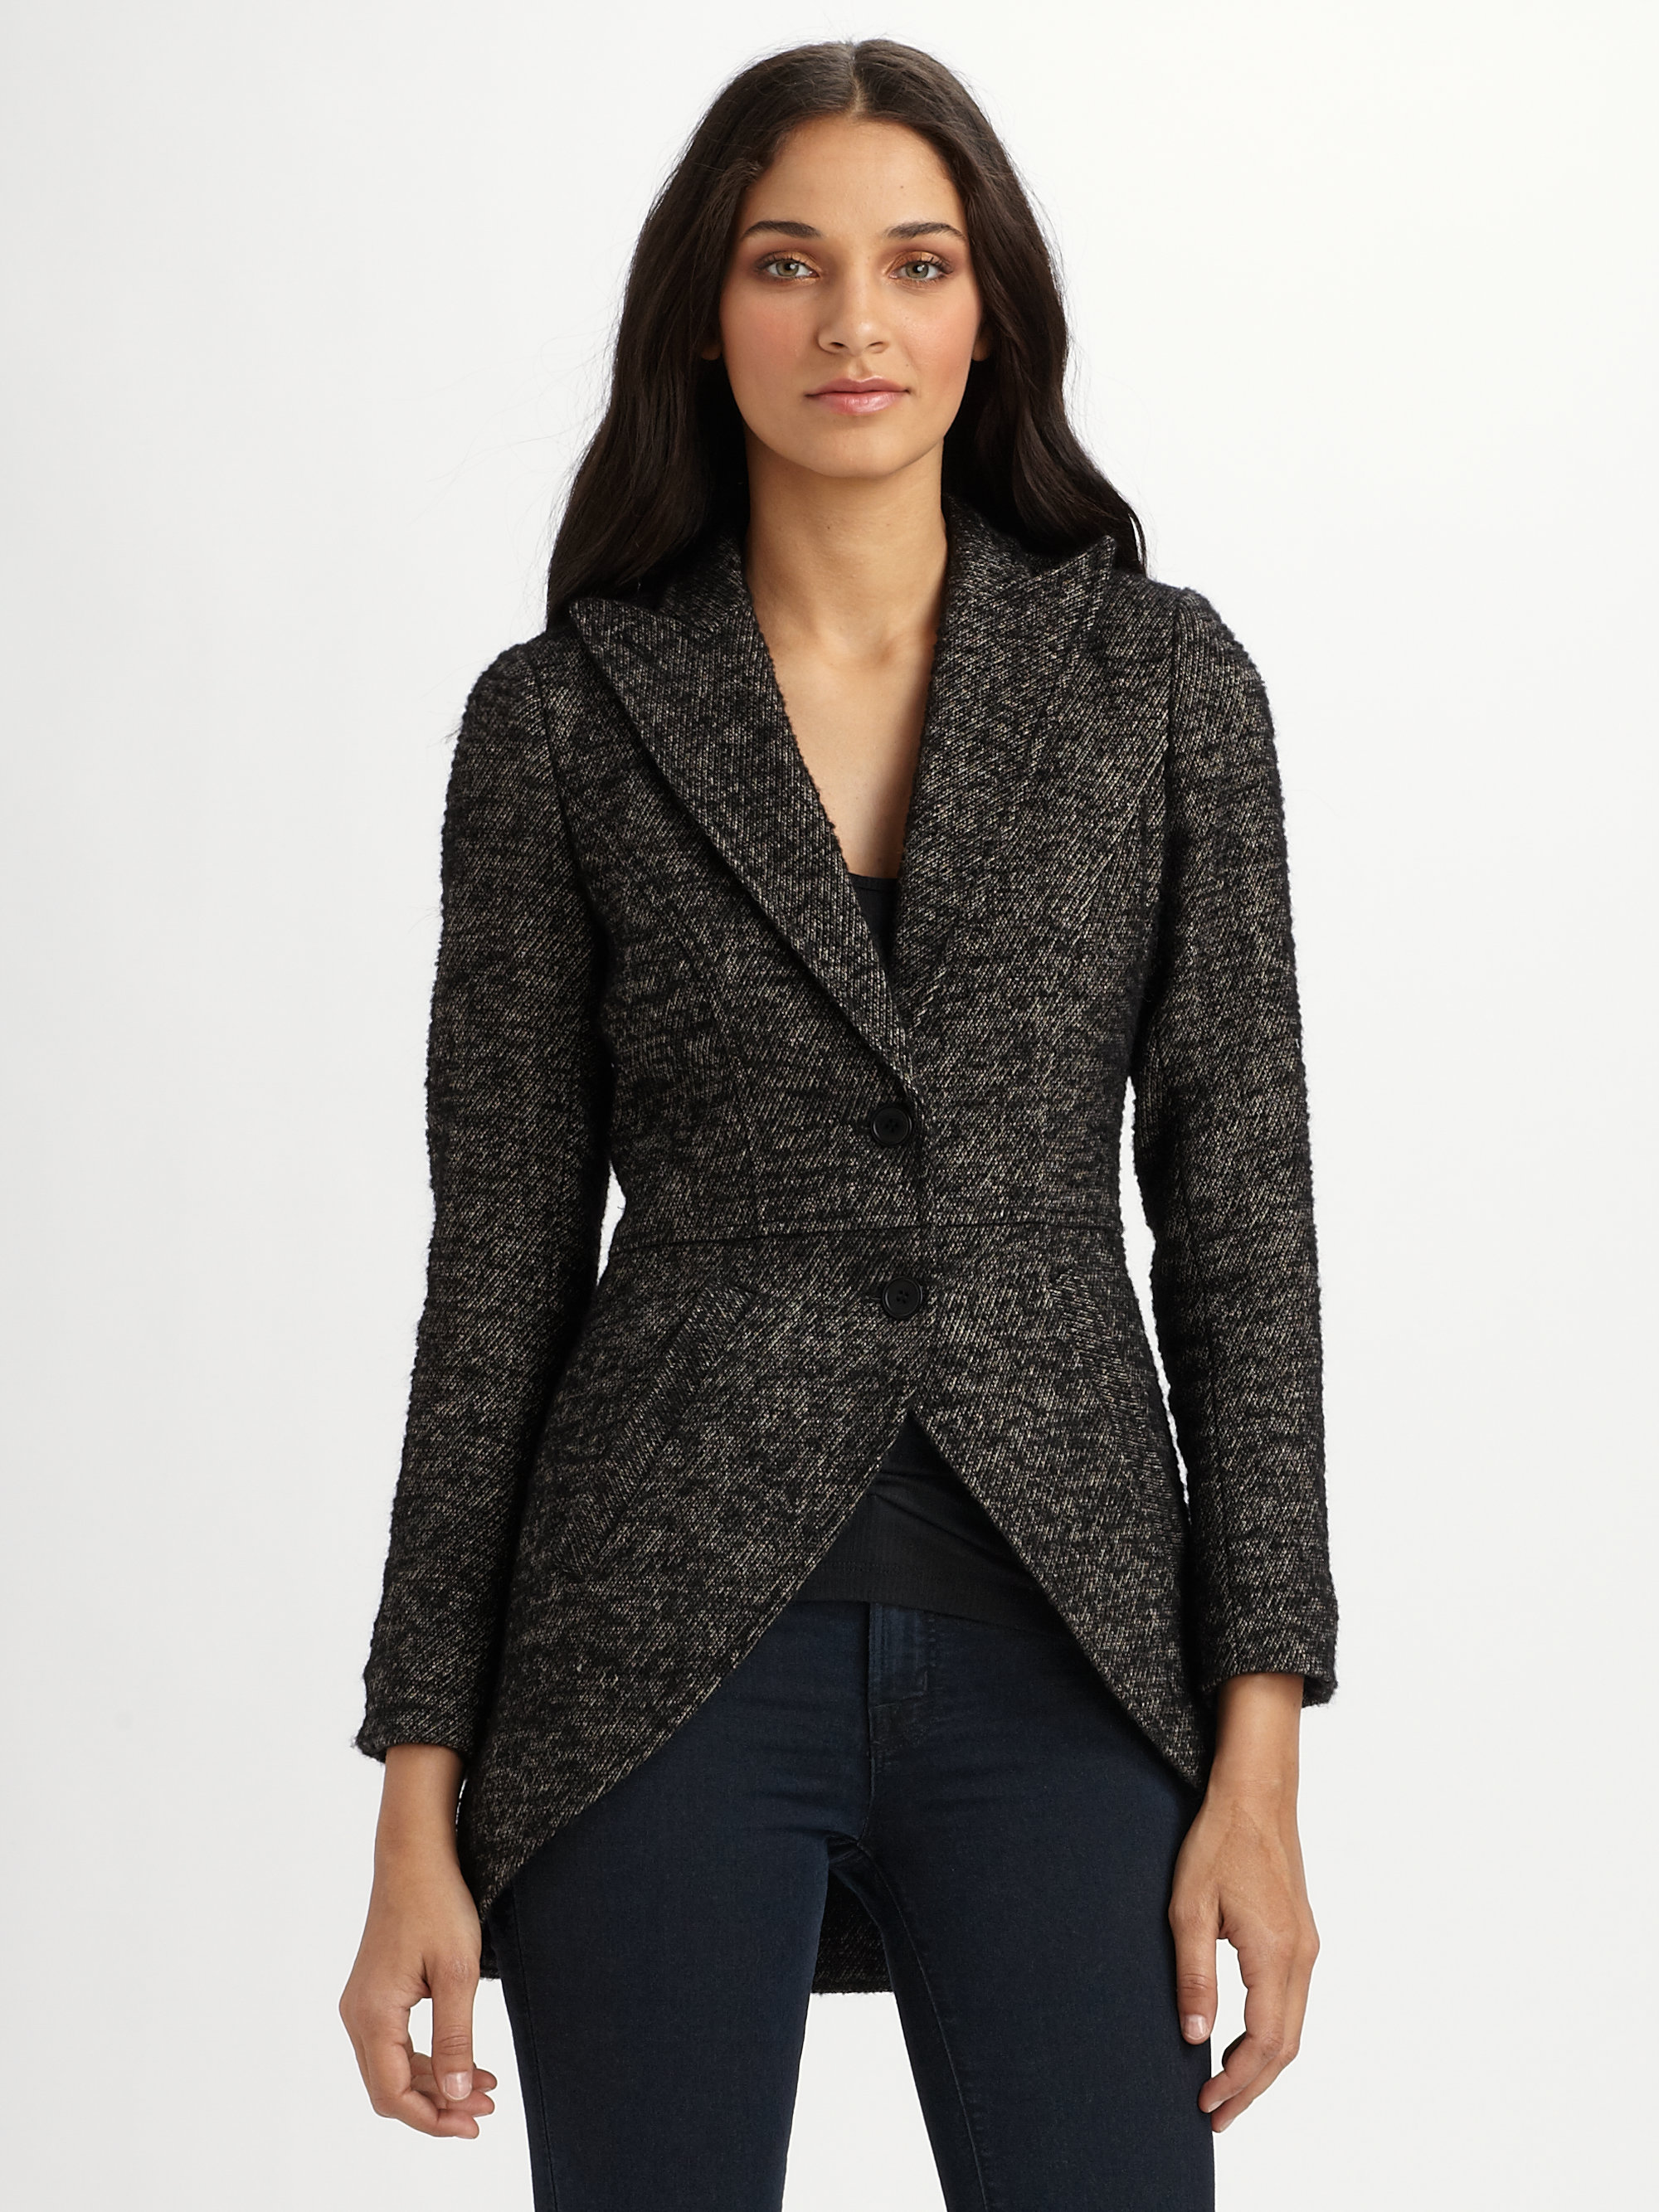 Smythe tweed riding jacket in gray black tweed lyst for Smythe designer